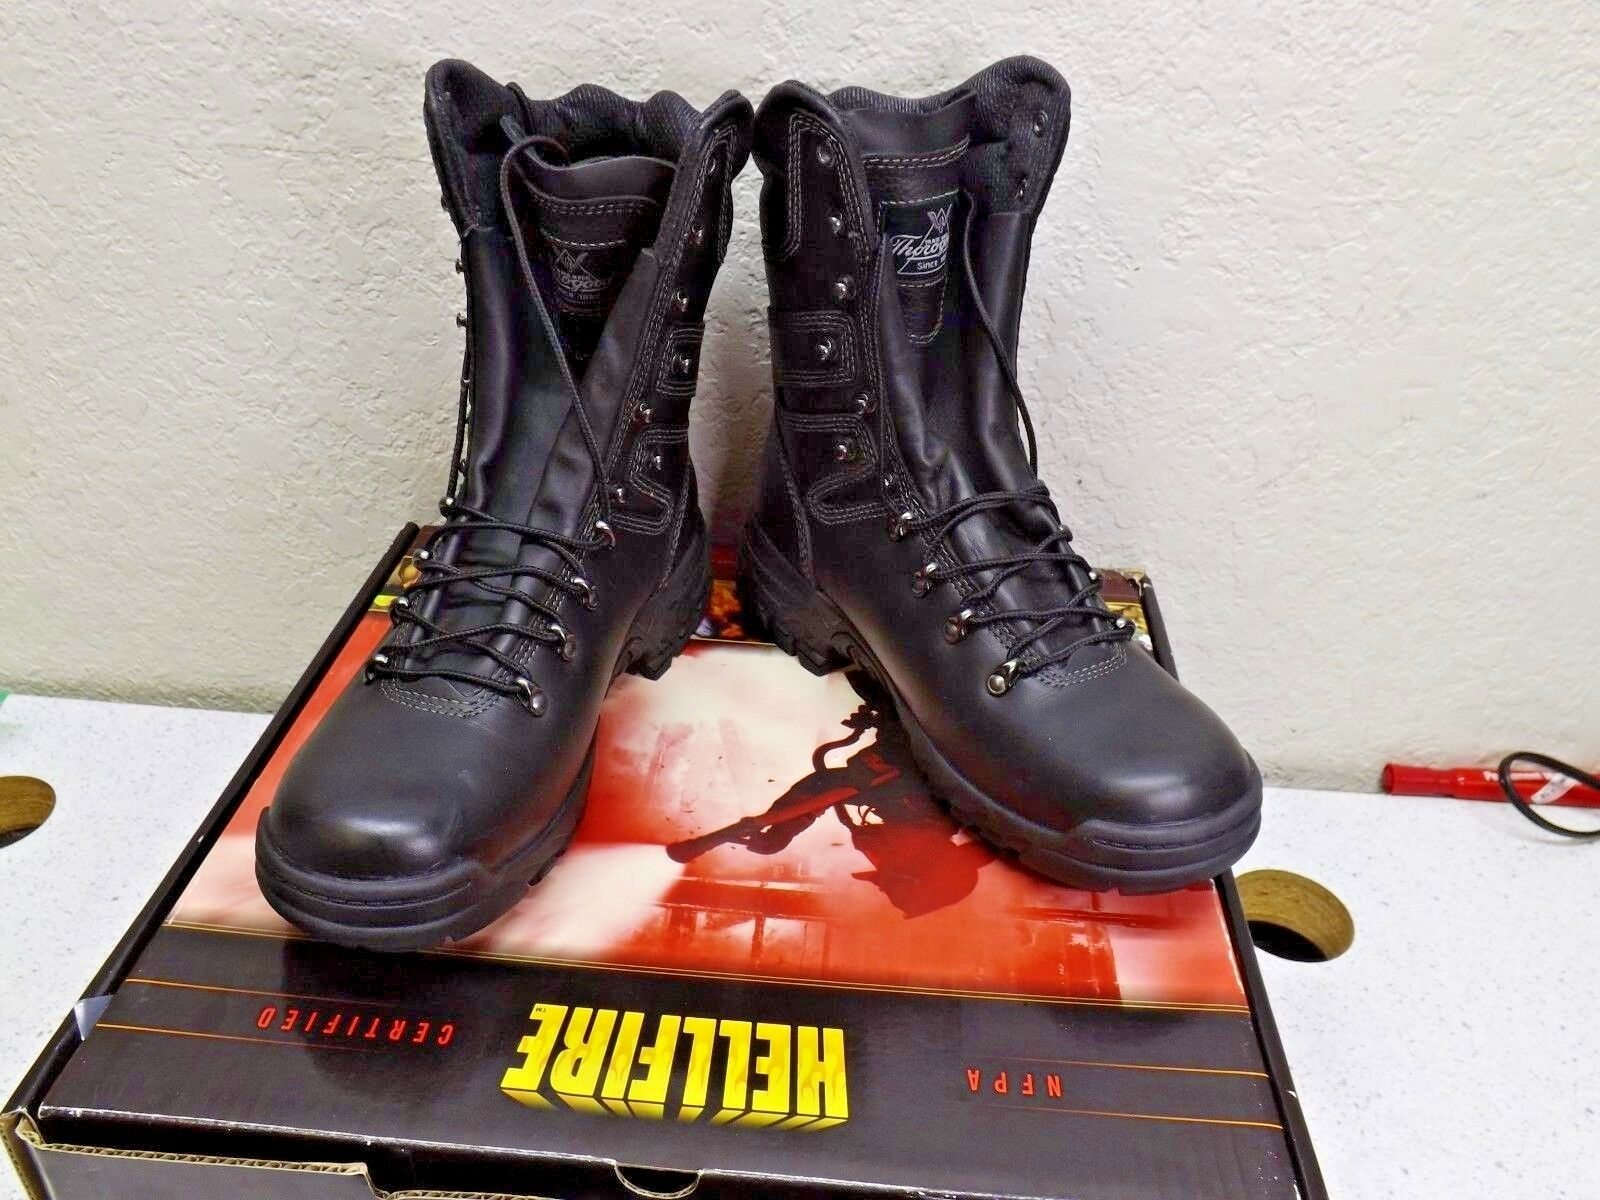 Thgoldgood Hellfire 9  NFPA 834-6383 Elite Wildland Hiking Fire-fighting Boot 10W